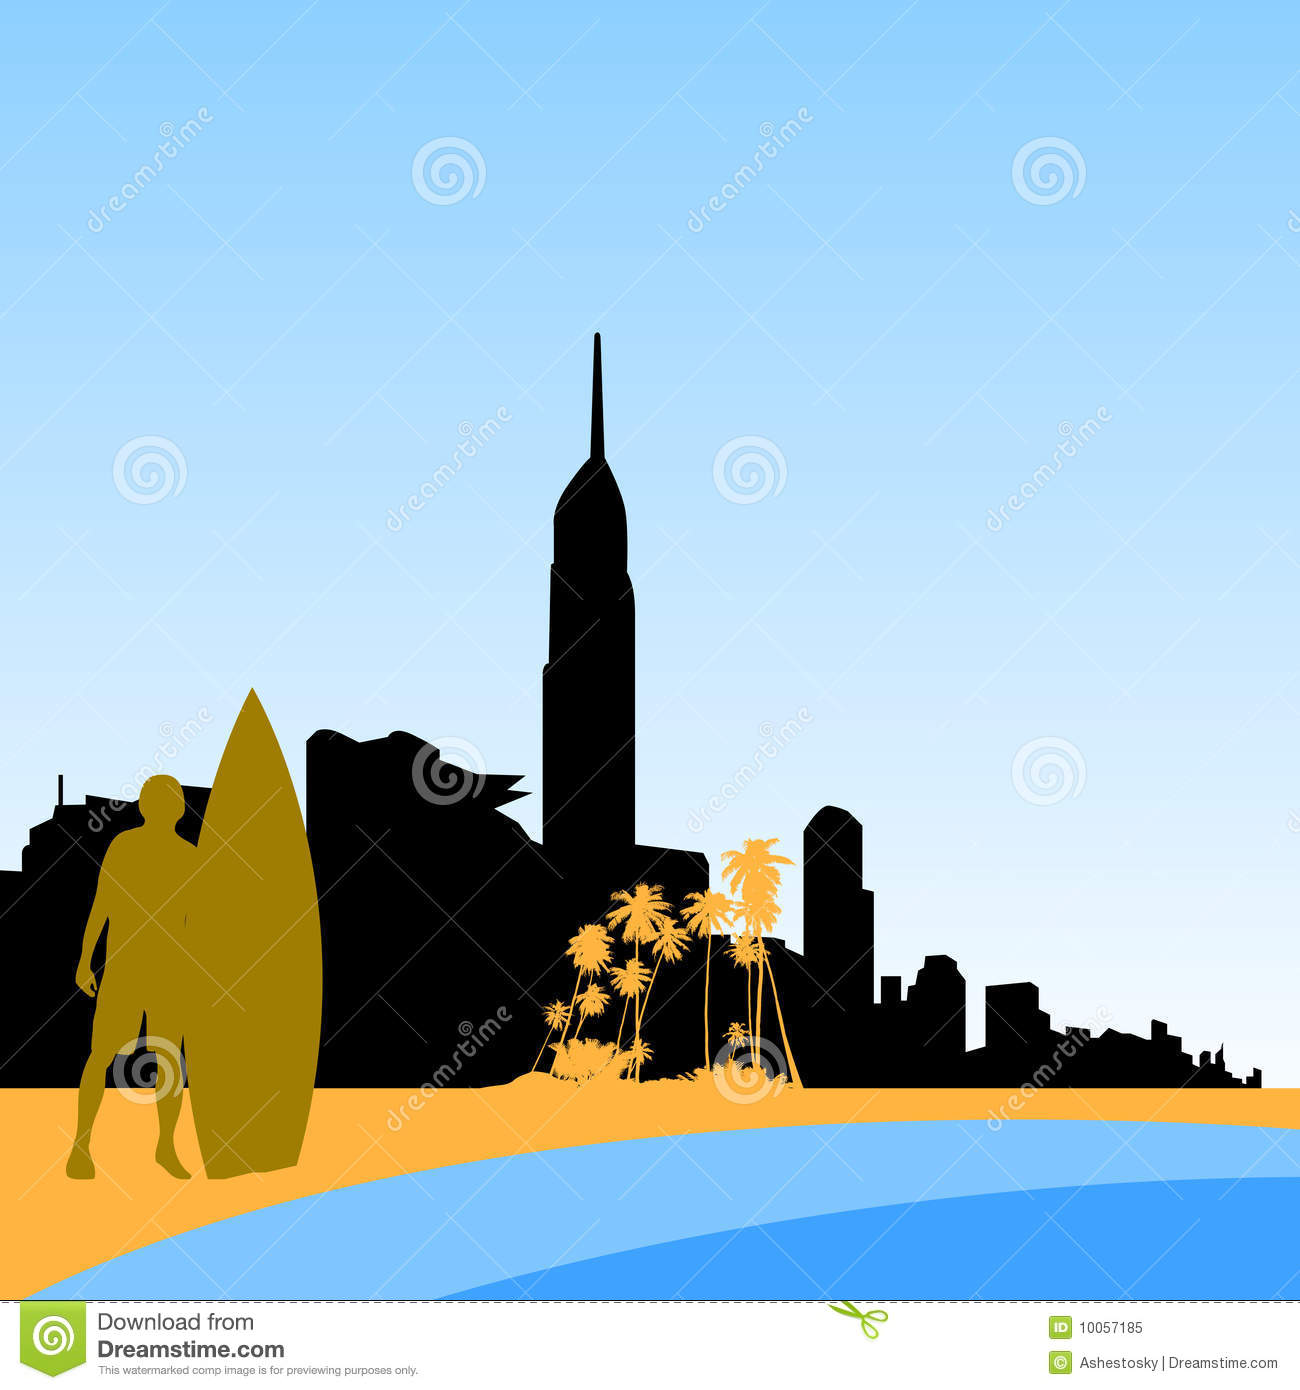 Coast clipart Clipart Download Gold Gold Coast